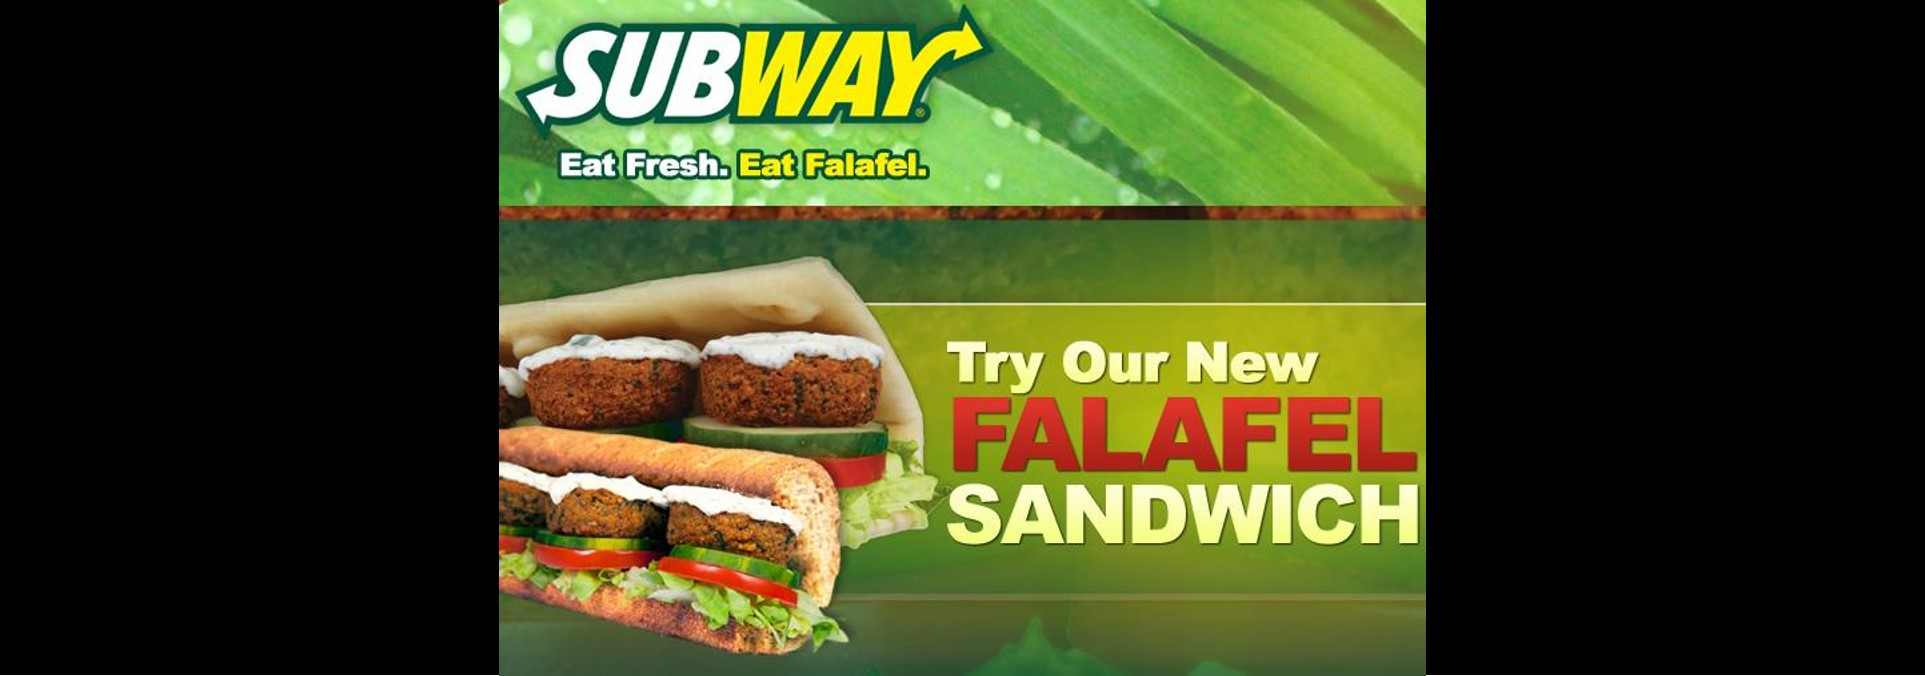 subway falafel.jpg